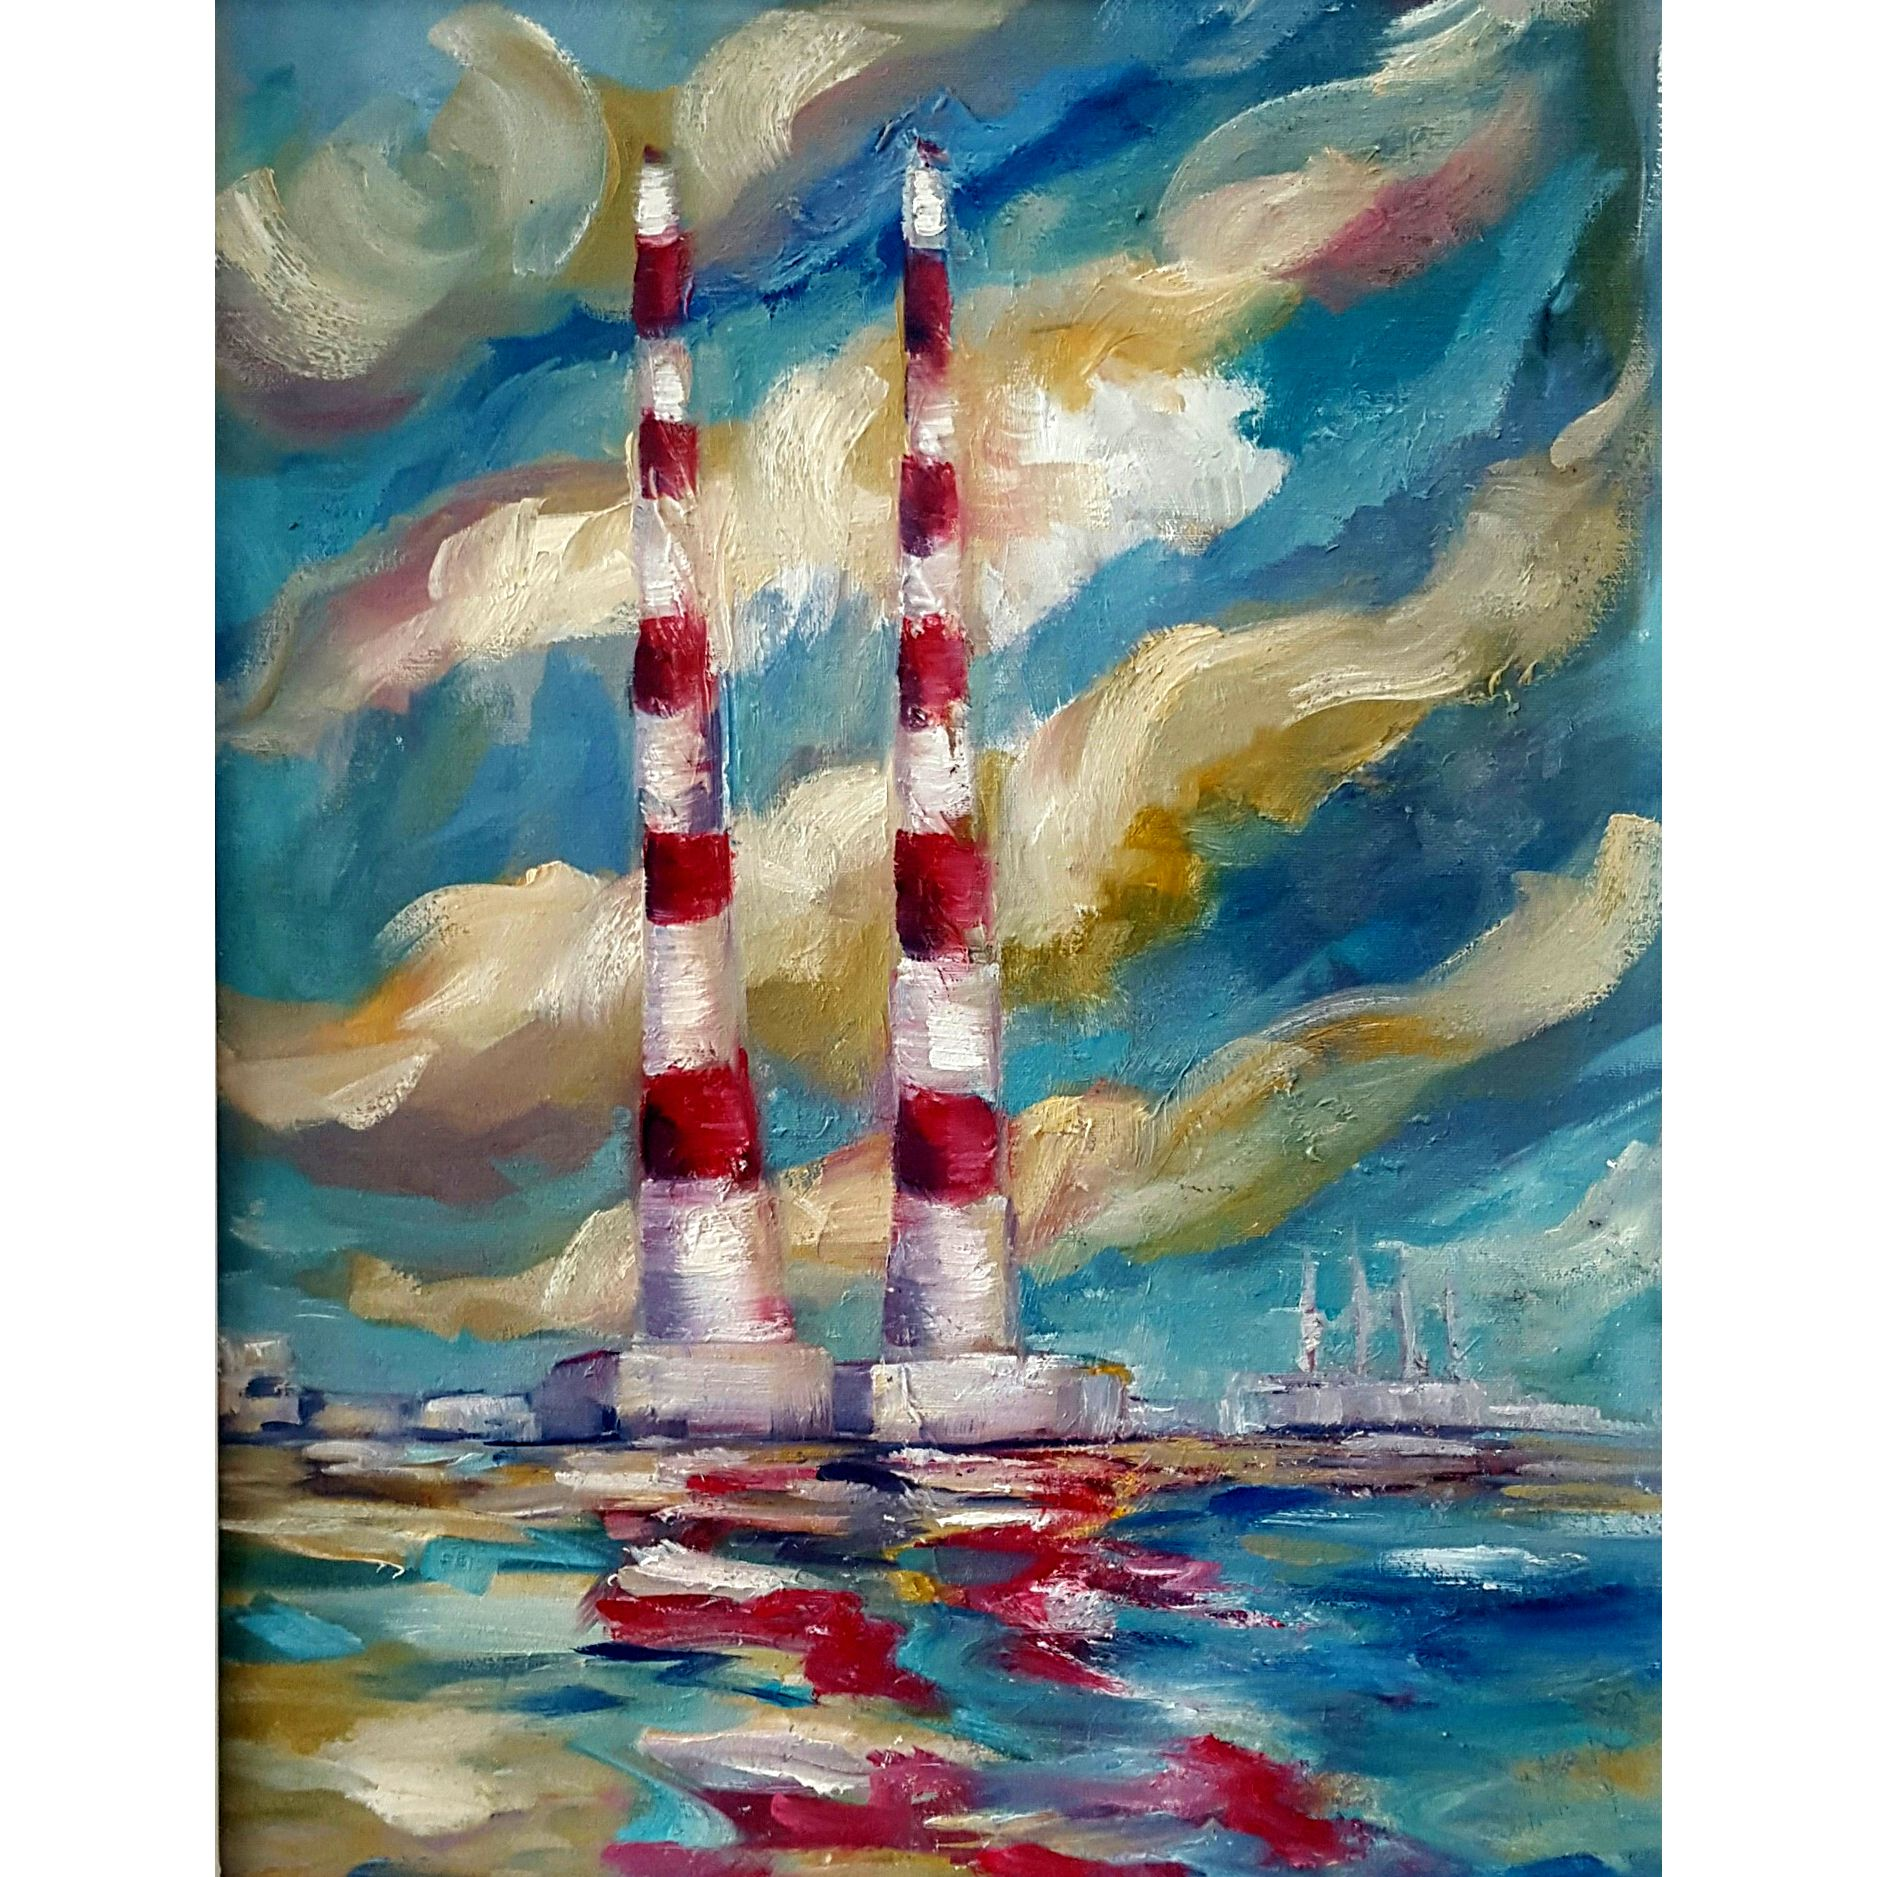 Poolbeg Chimneys Sandymount Christmas Sale By Niki Purcell Artclickireland Com Abstract Artwork Art Abstract